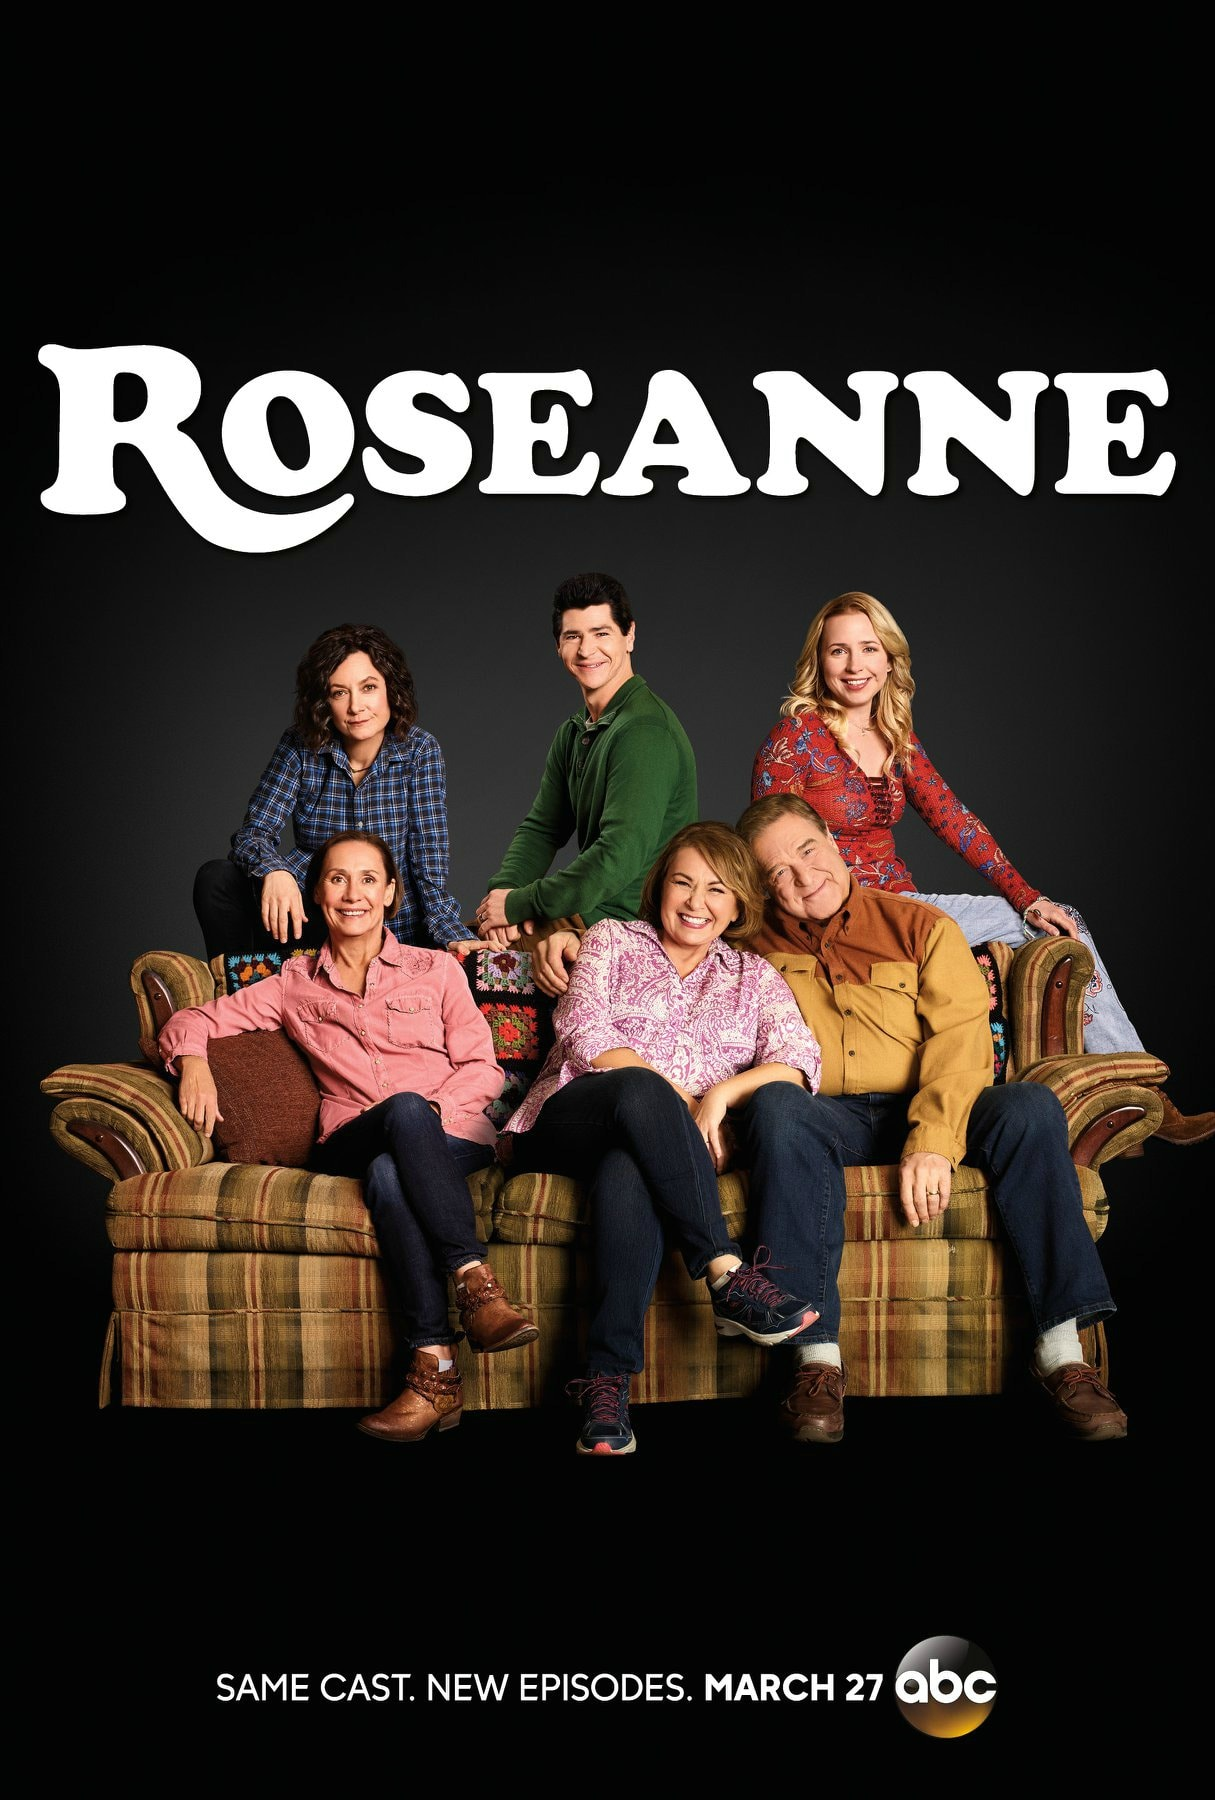 The new Roseanne